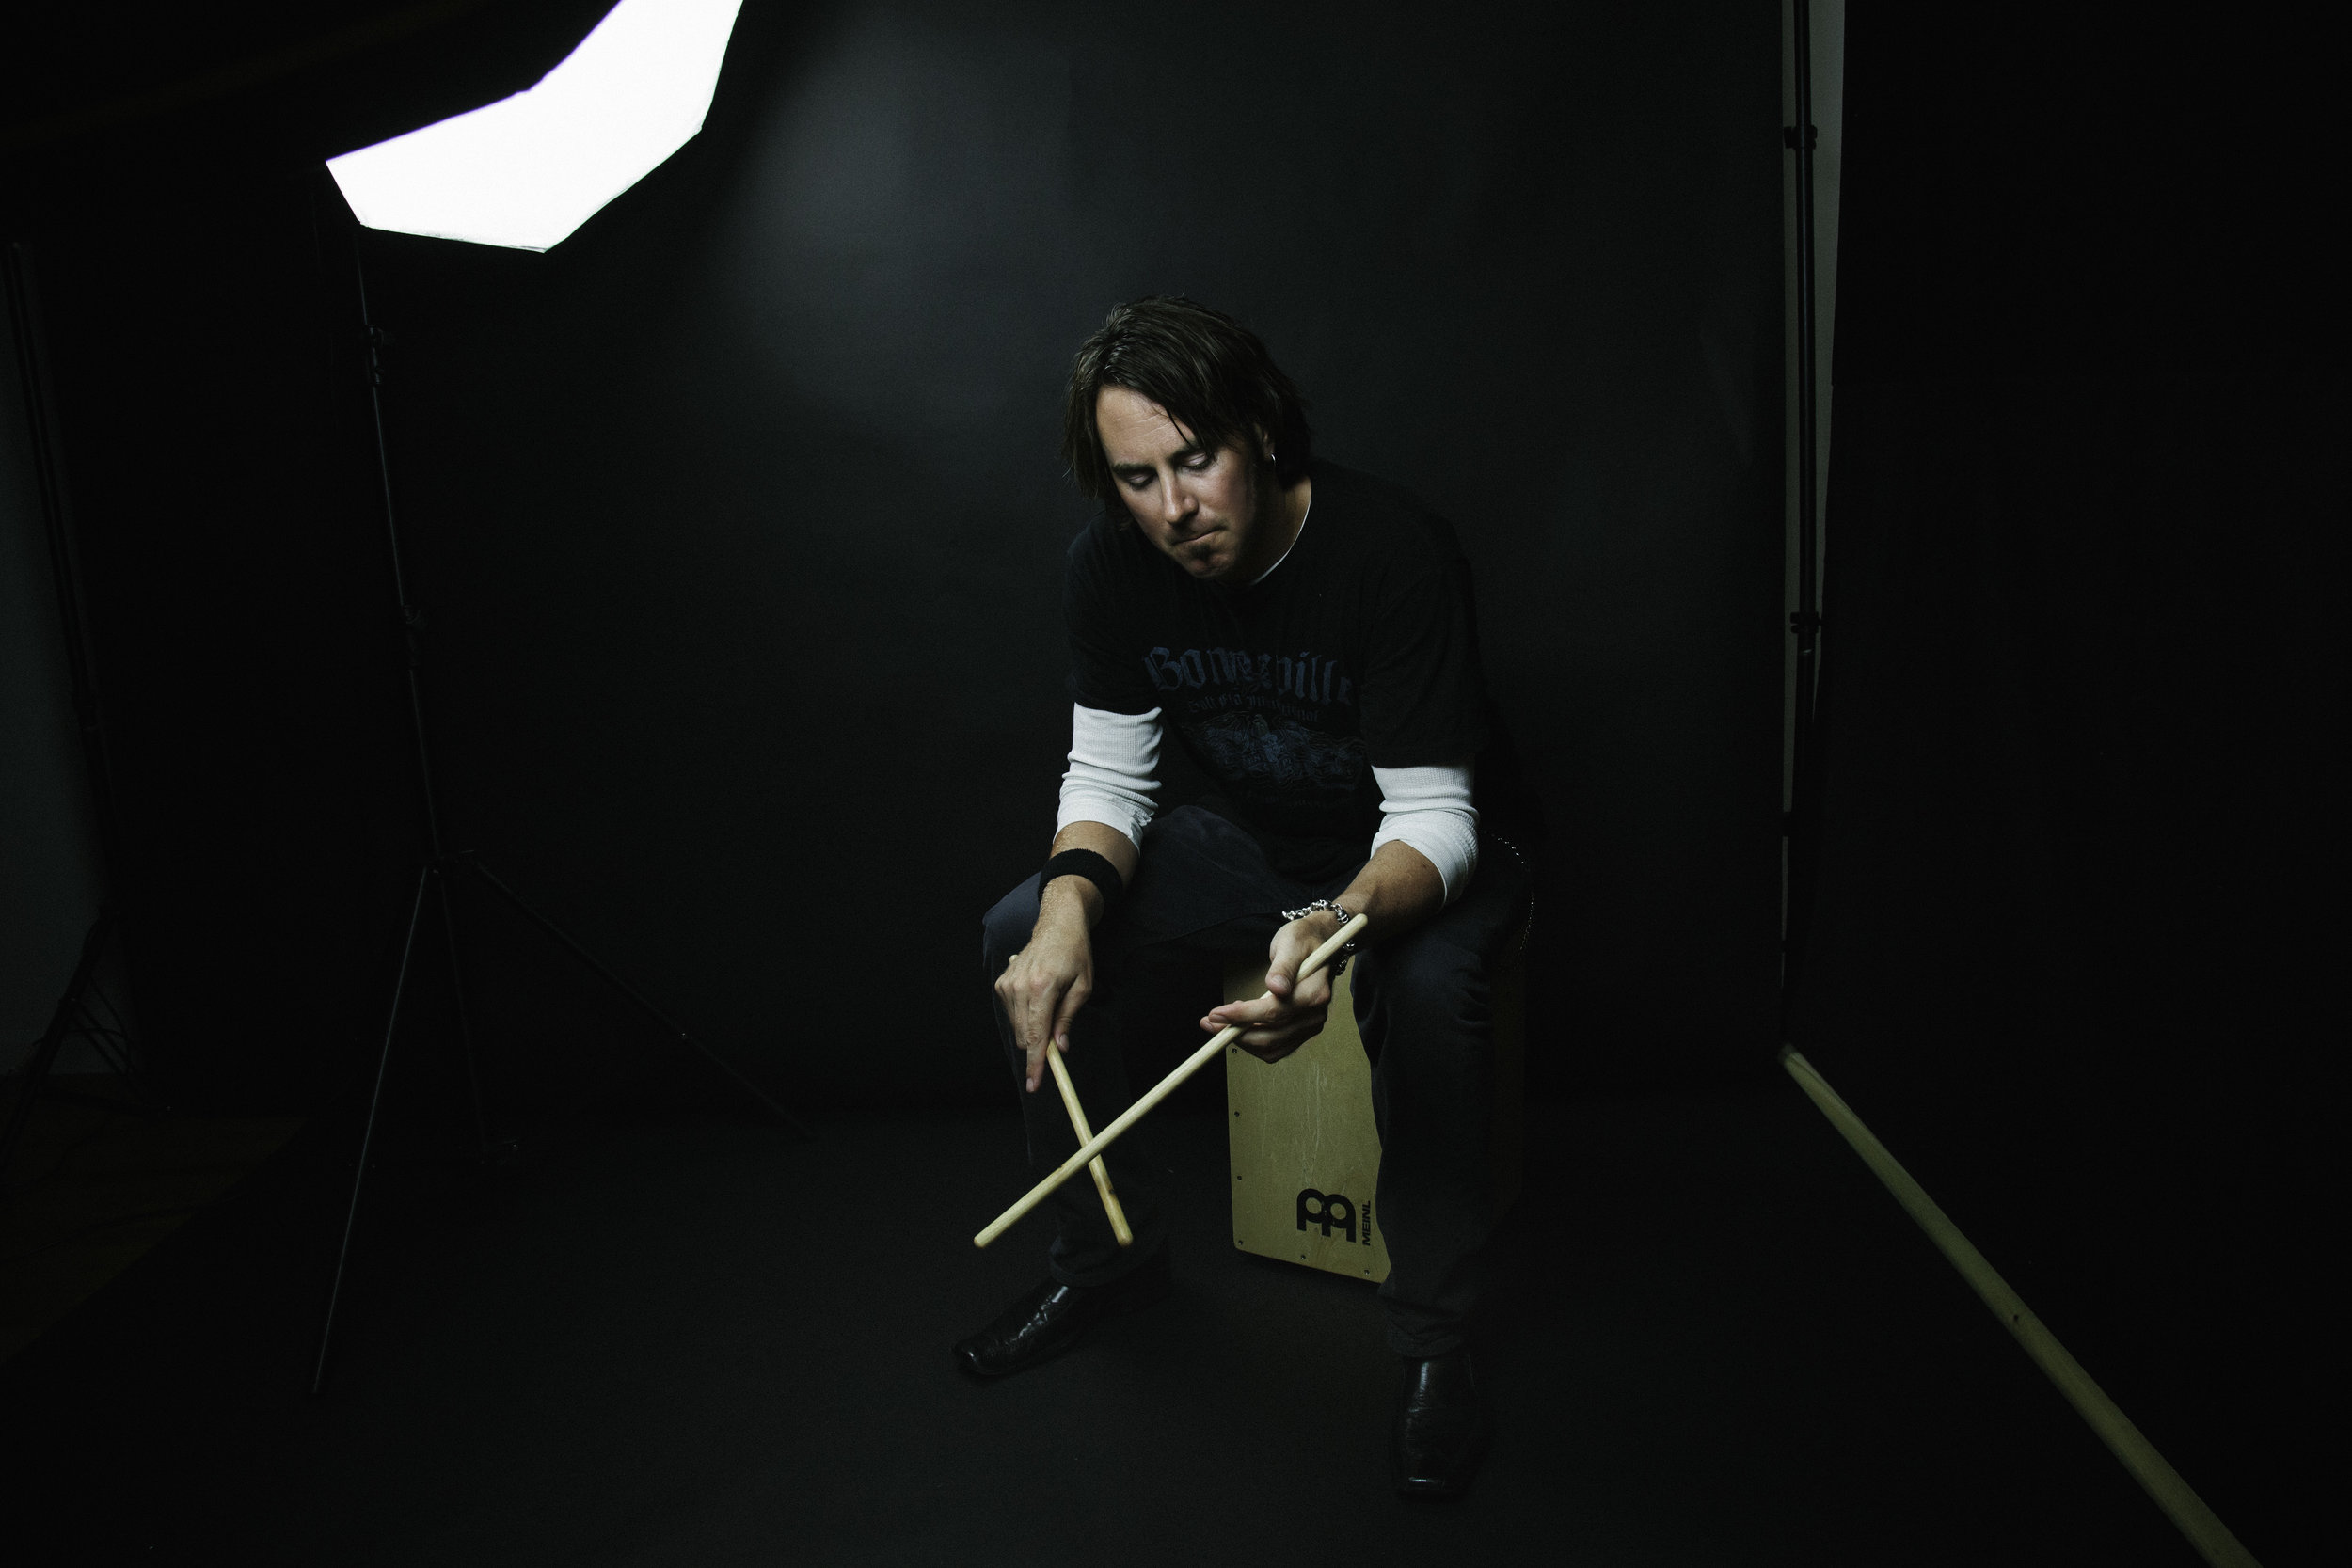 PERCUSSIONIST - Jason Yudoff is a dynamic and versatile self-taught musician from Brooklyn who interprets the rhythms of life through percussion, drum kit, keyboards, street objects, household items, and his own body.